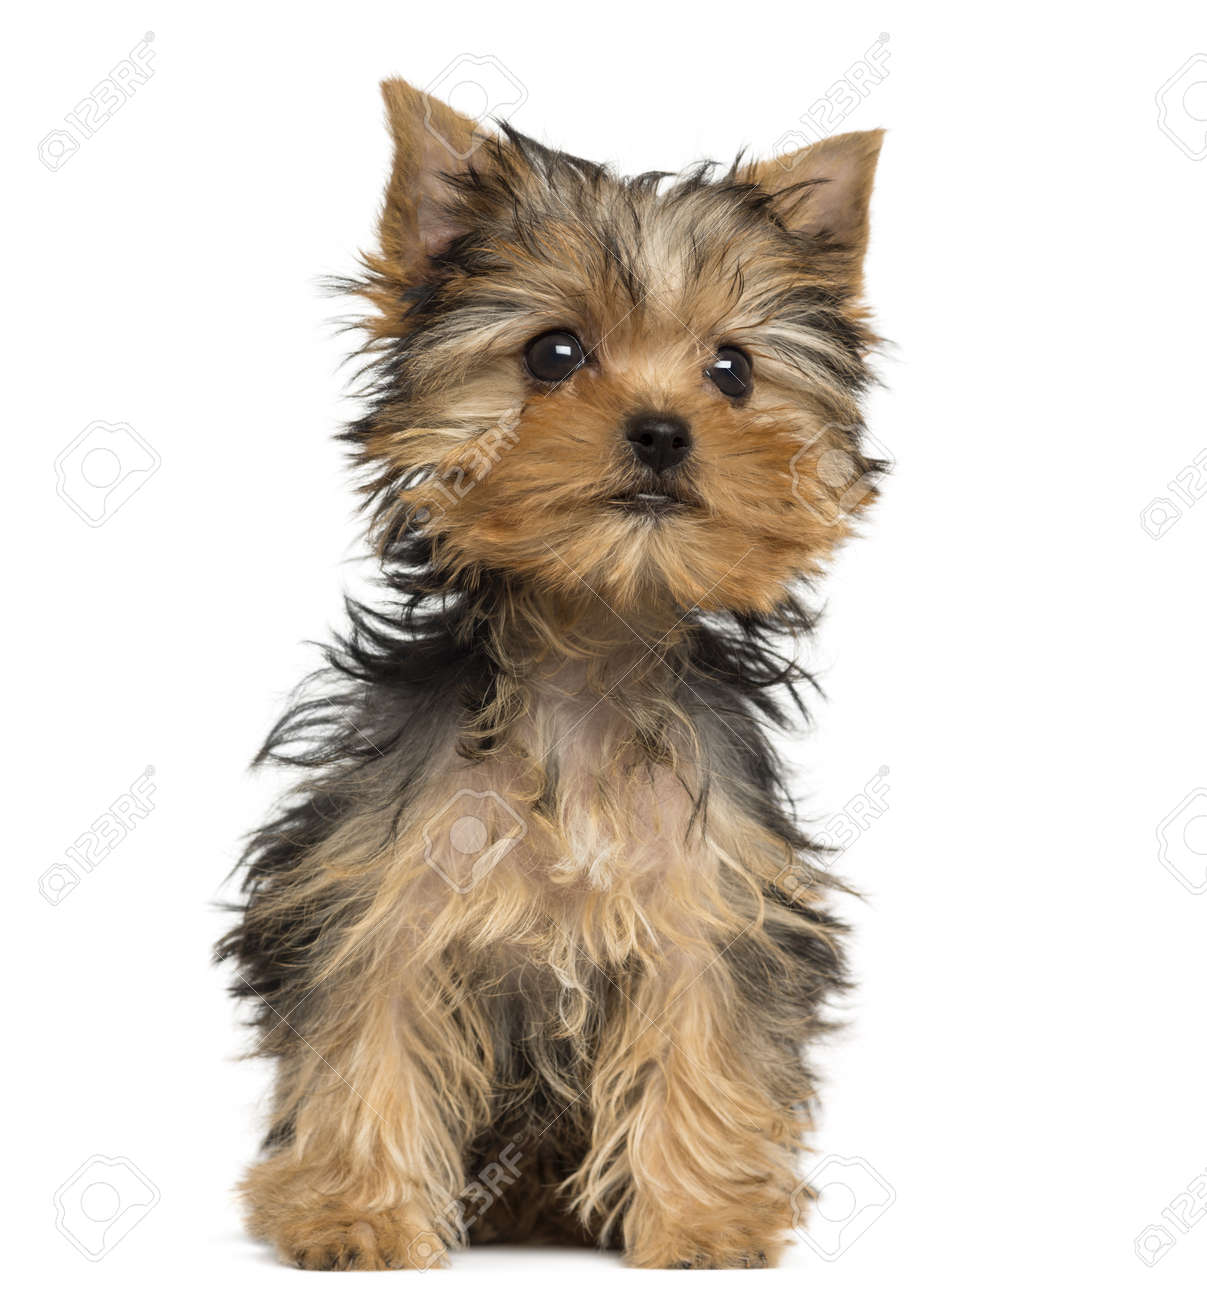 Yorkshire Terrier Puppy Sitting 3 Months Old Isolated On White